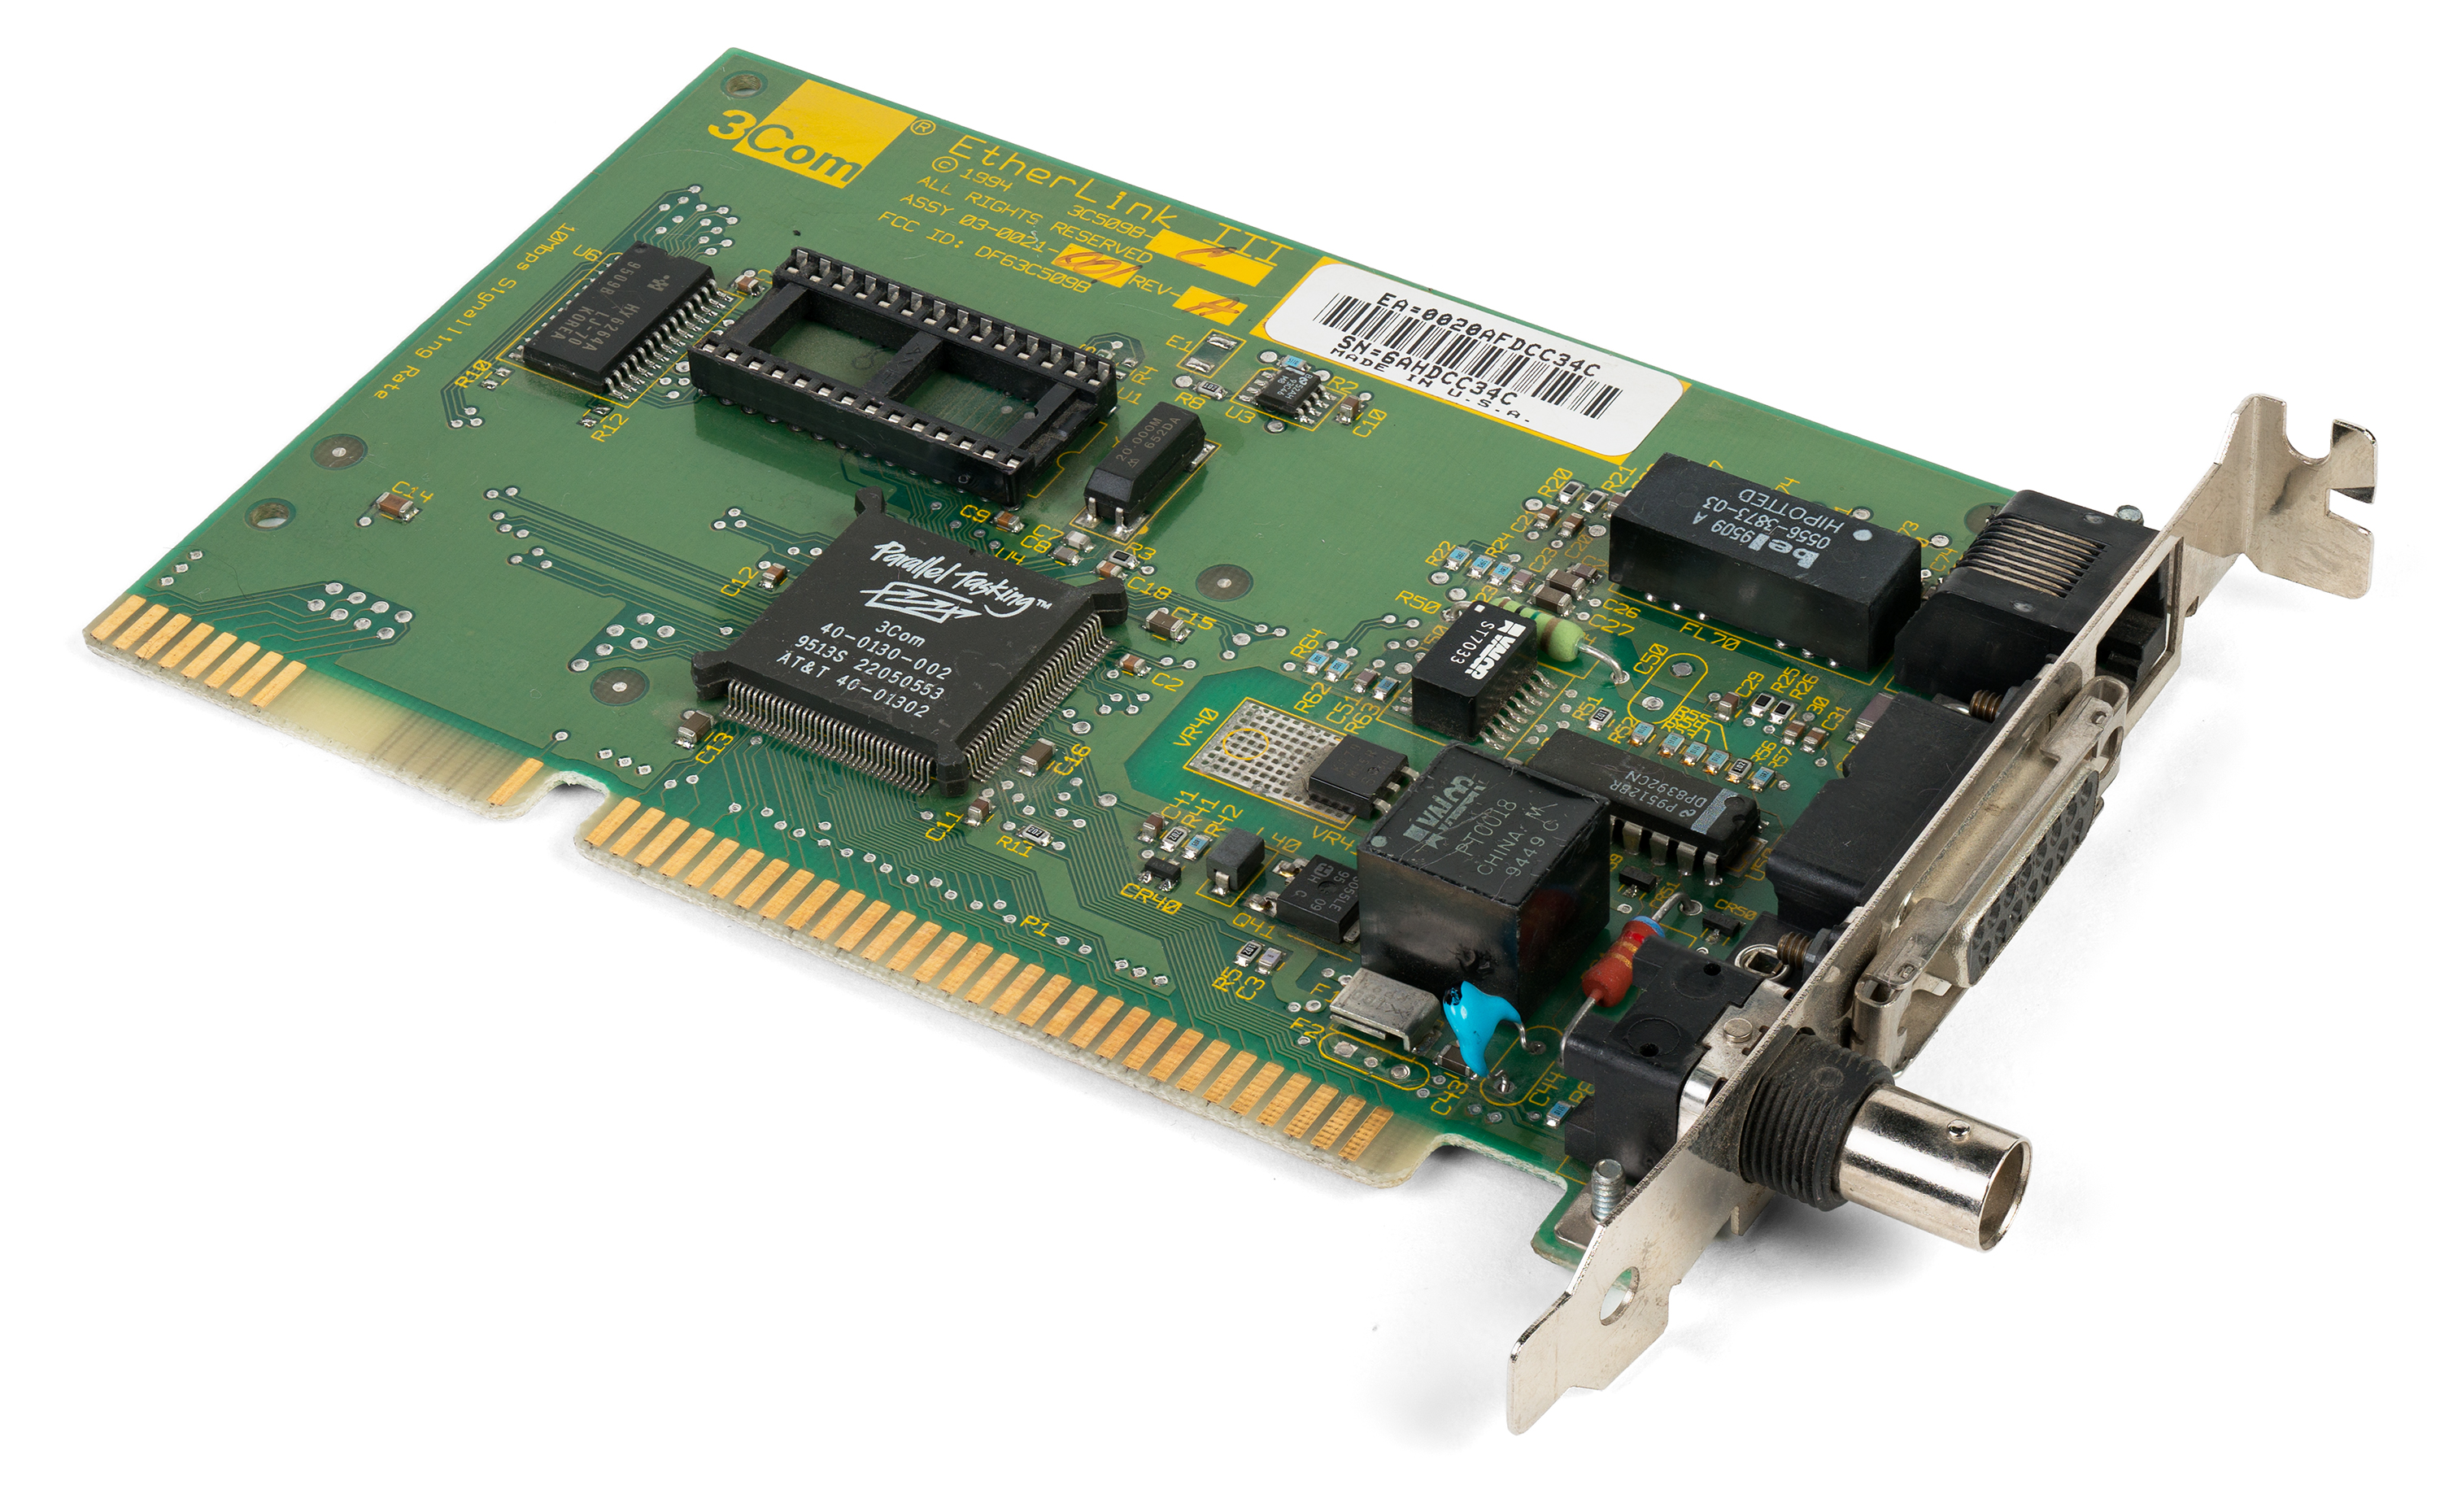 Drivers Update: 3Com EtherLink III TP 16-32-Bit MCA Nic 3C529-TP